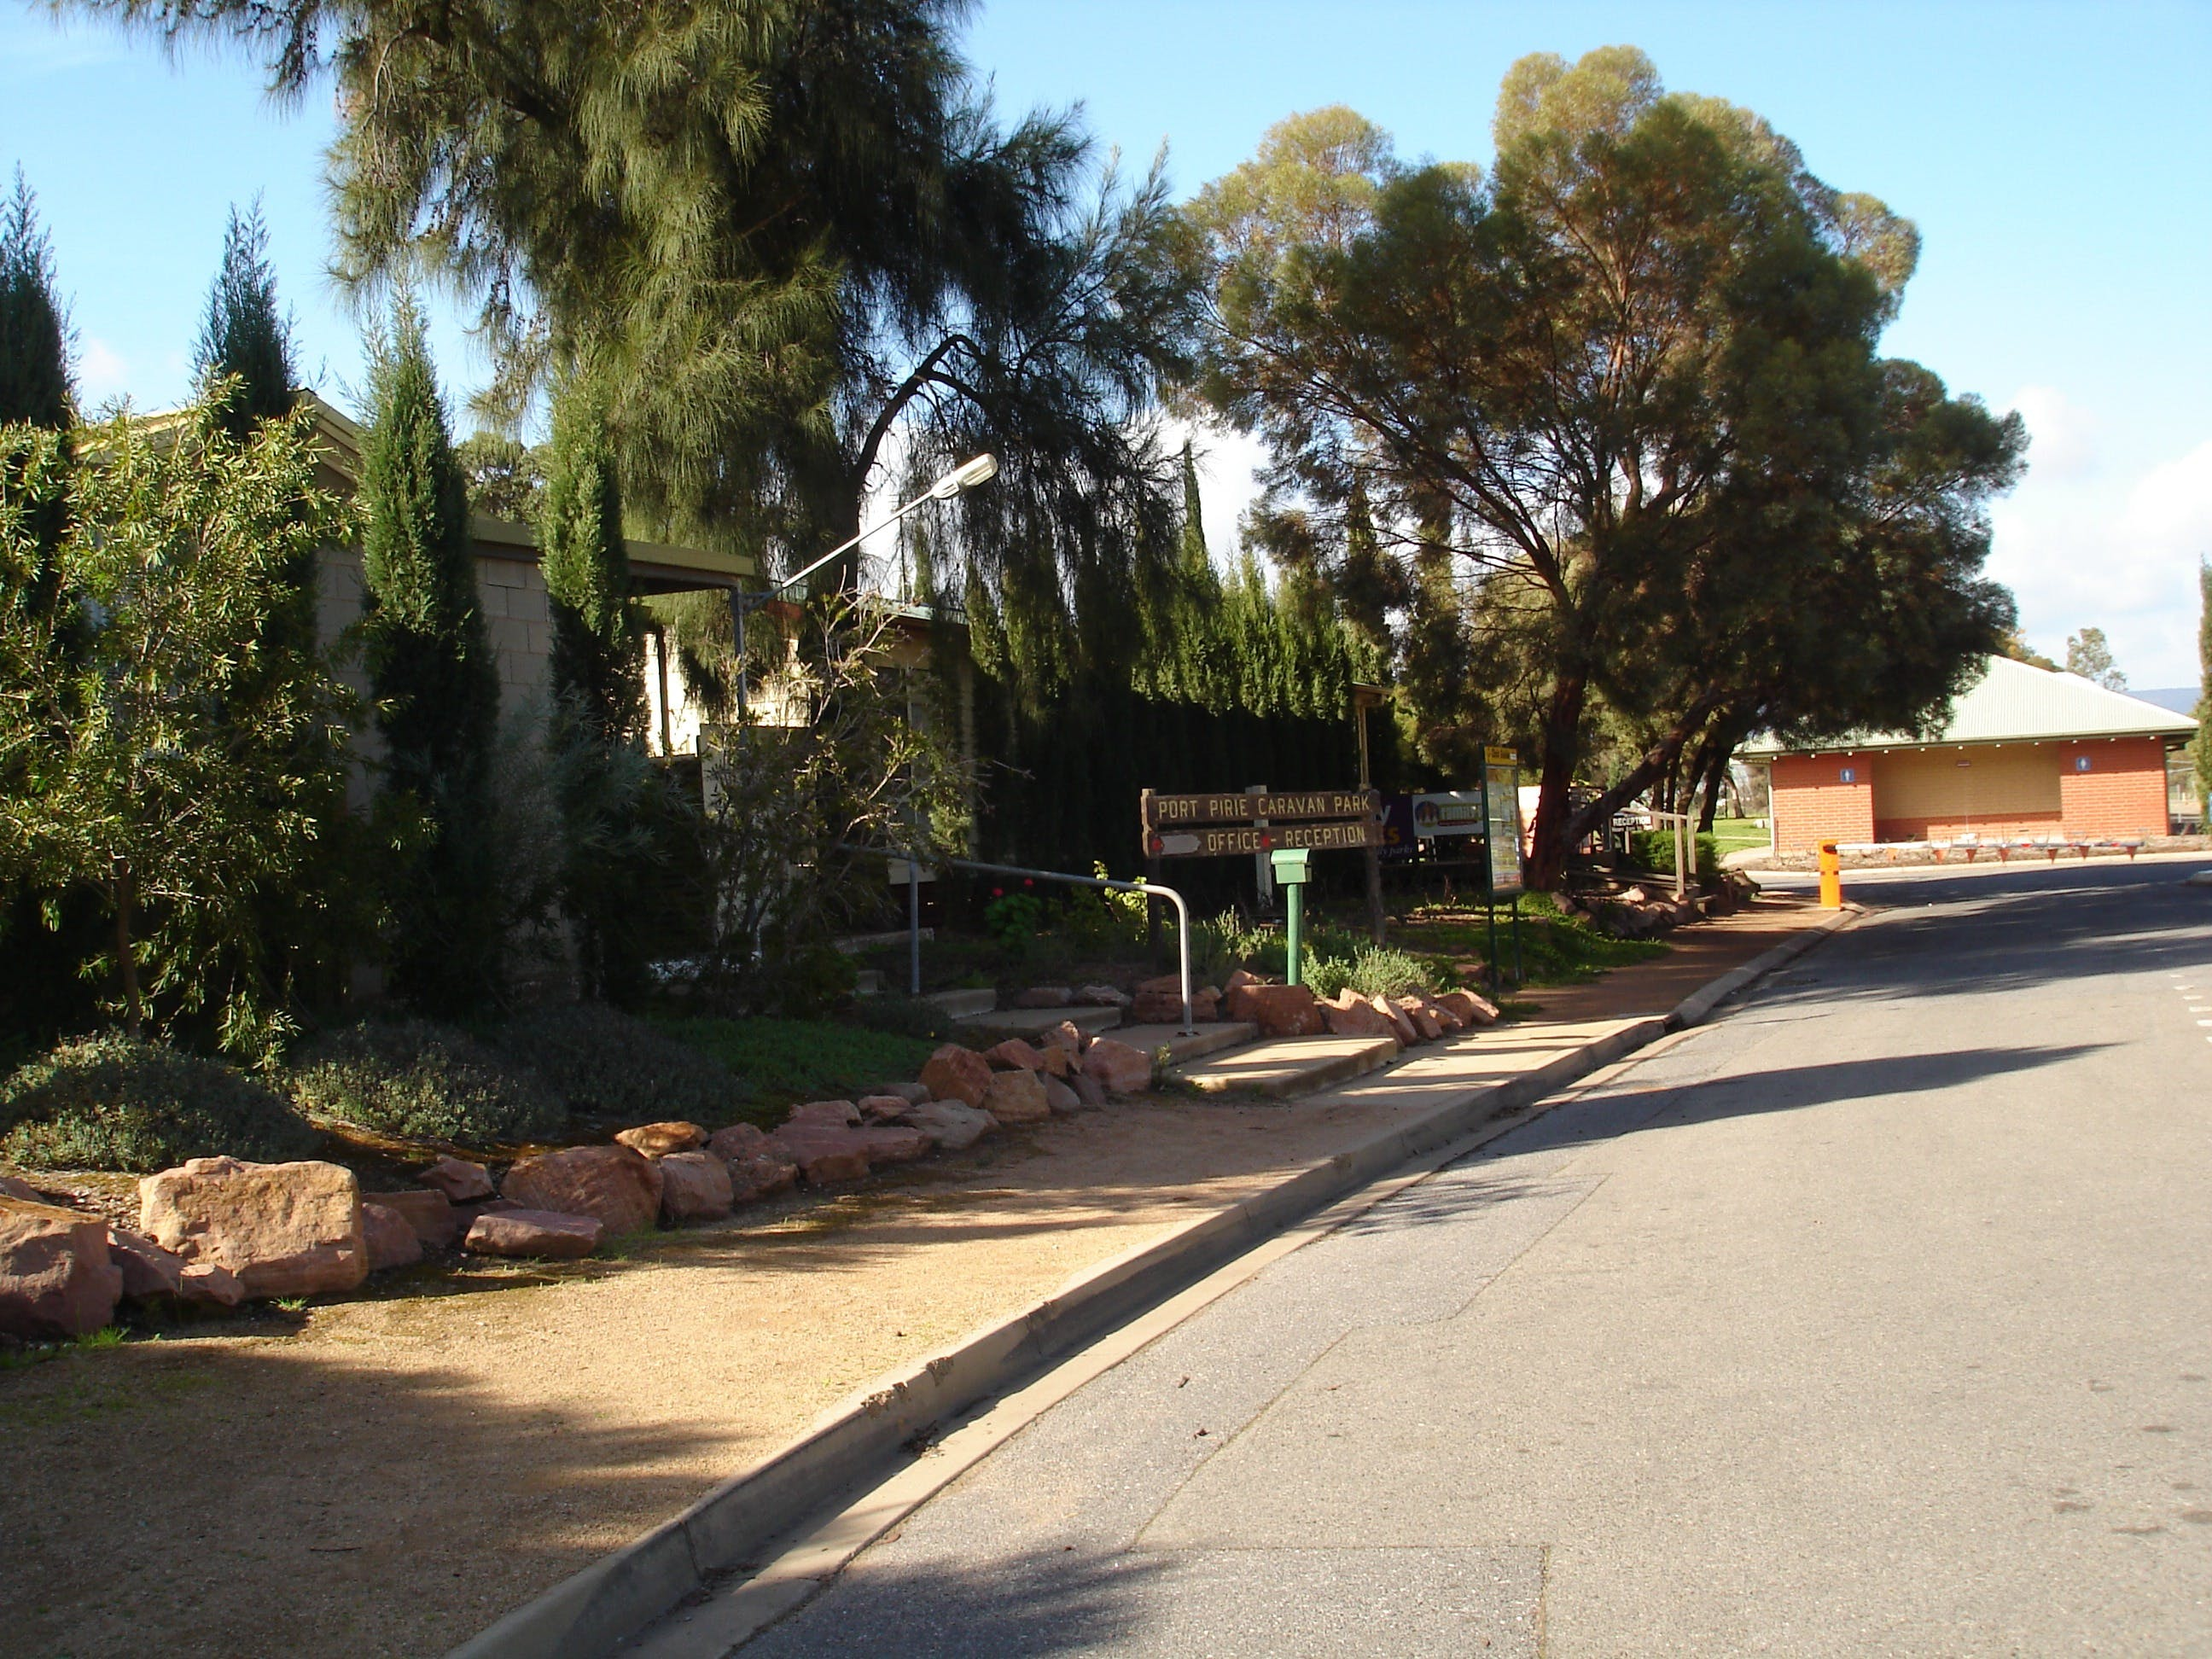 Port Pirie Beach Caravan Park - Accommodation BNB